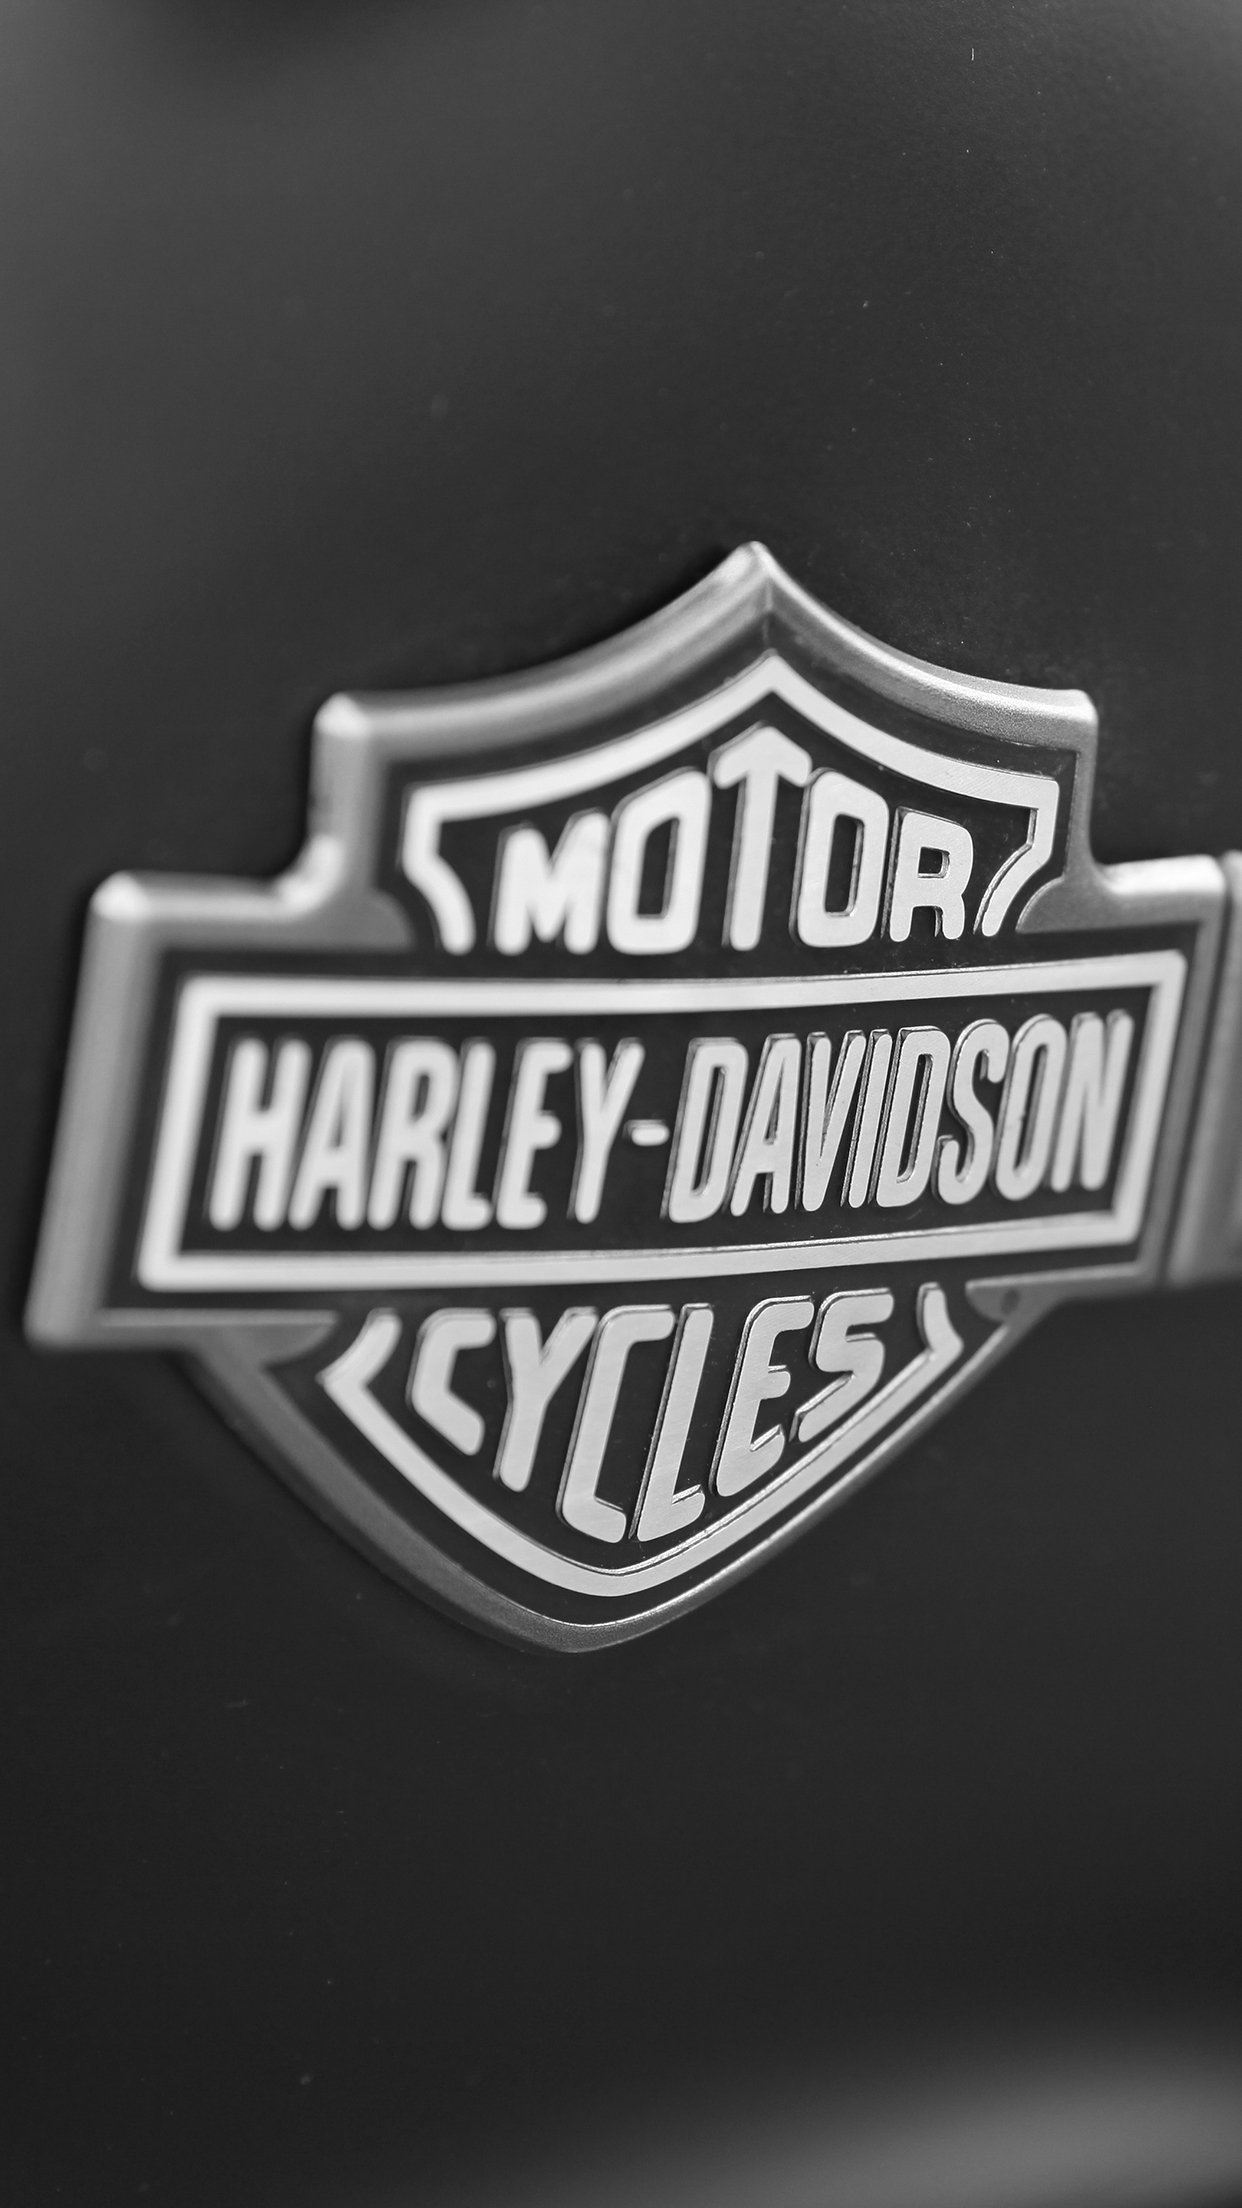 harley davidson logo wallpaper for iphone x 8 7 6